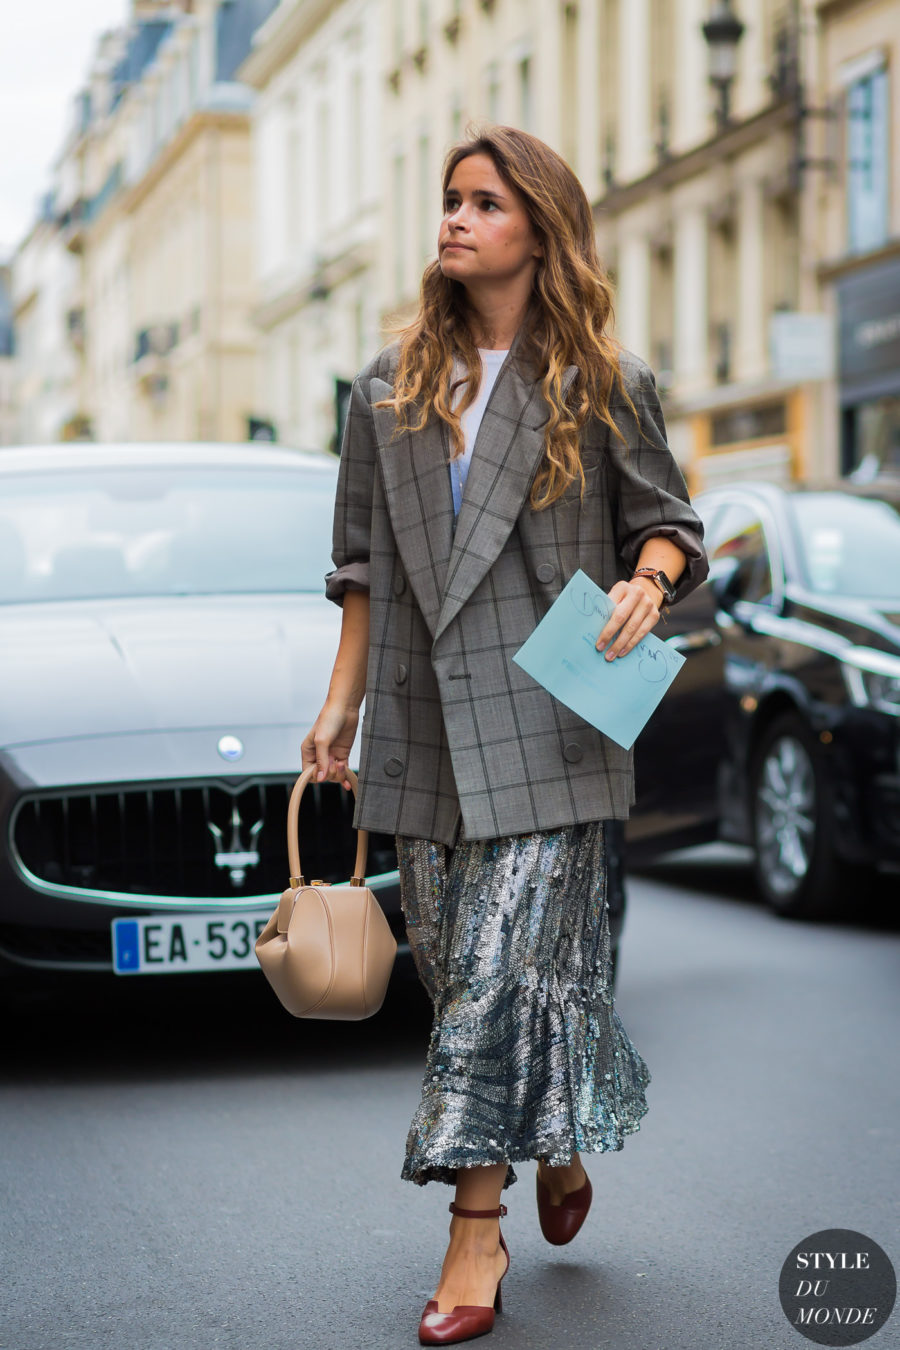 Why You Need a Summer Blazer - oversized blazer, miroslava duma style // Notjessfashion.com